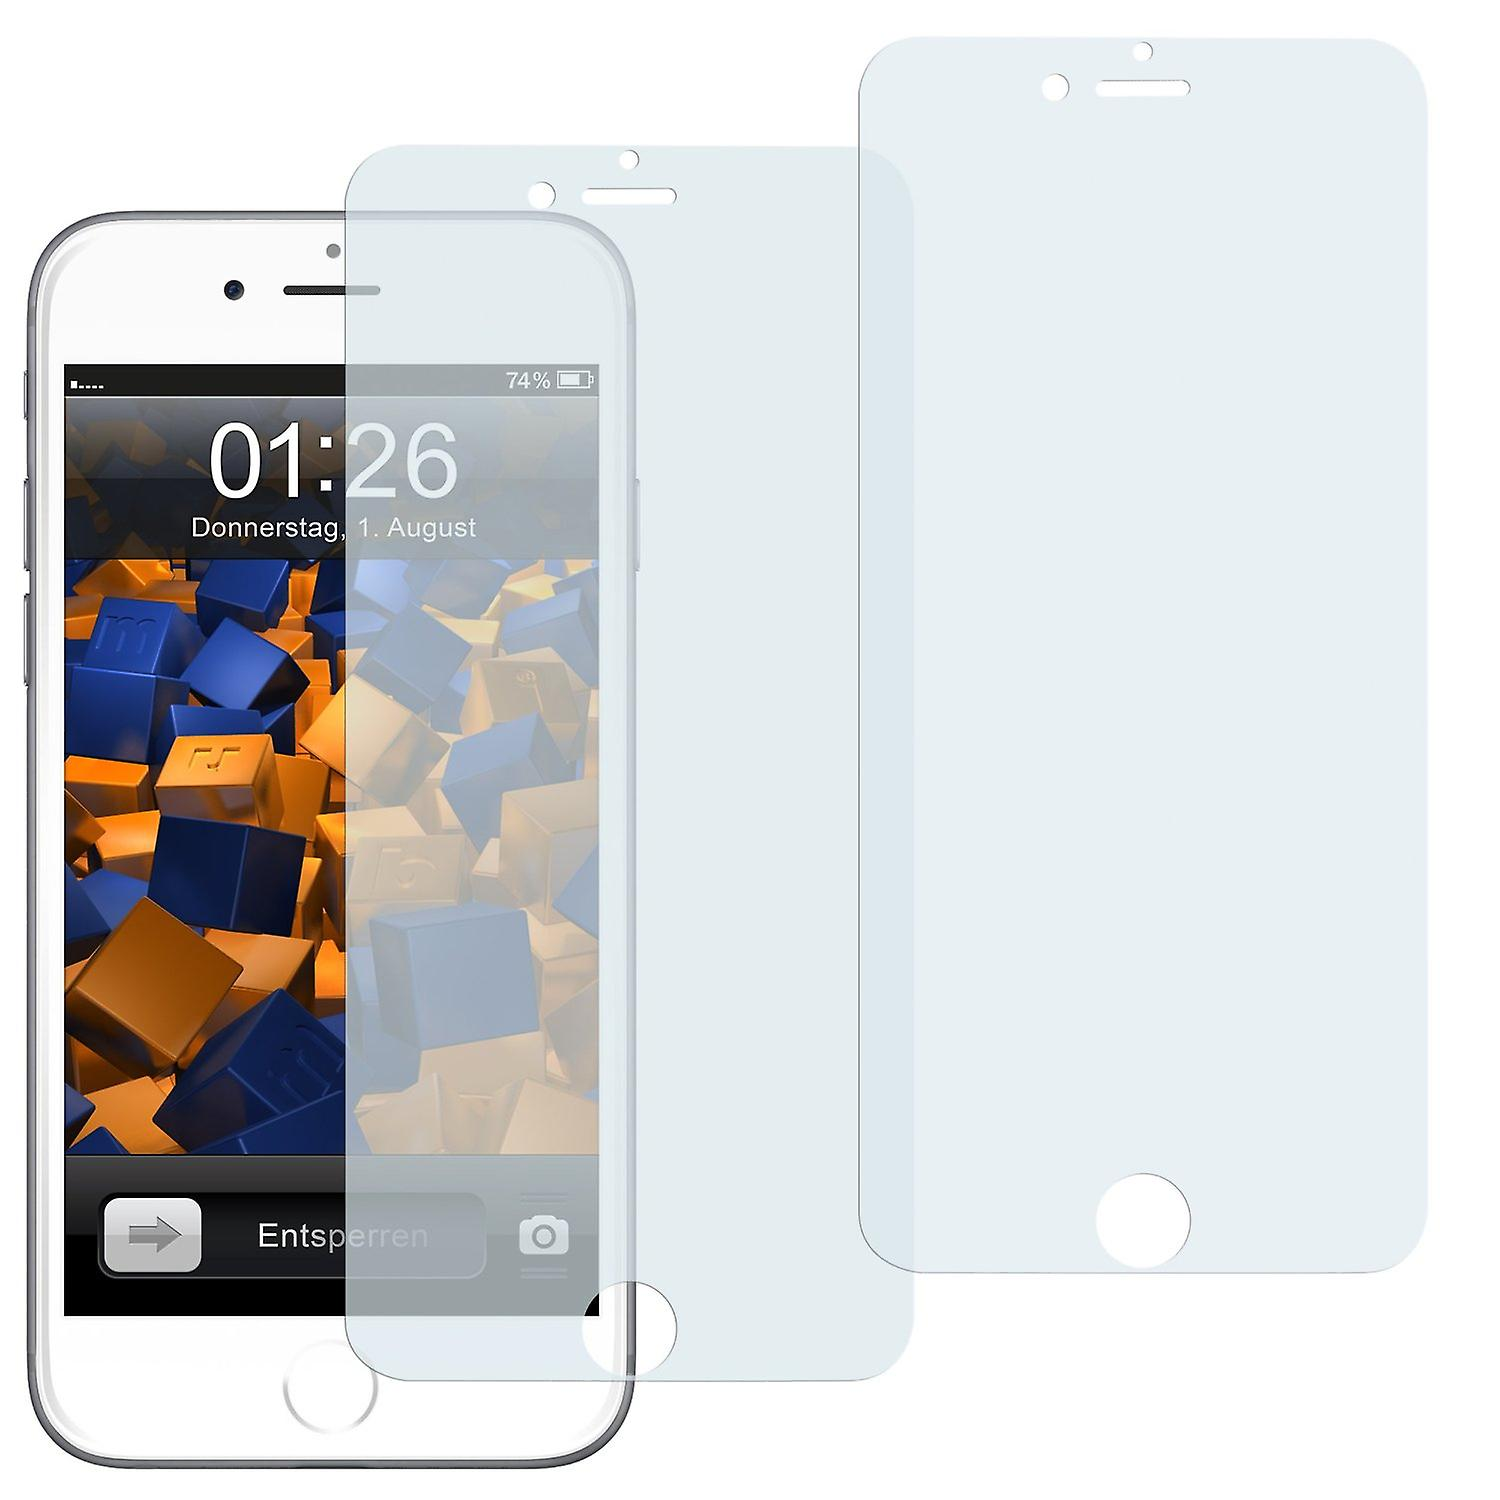 IPhone 6 Screen Protector Apple iPhone 6 Plus 5.5 Screen Protector - 6 Pack Premium HD Clear versie voor iPhone 6 Plus